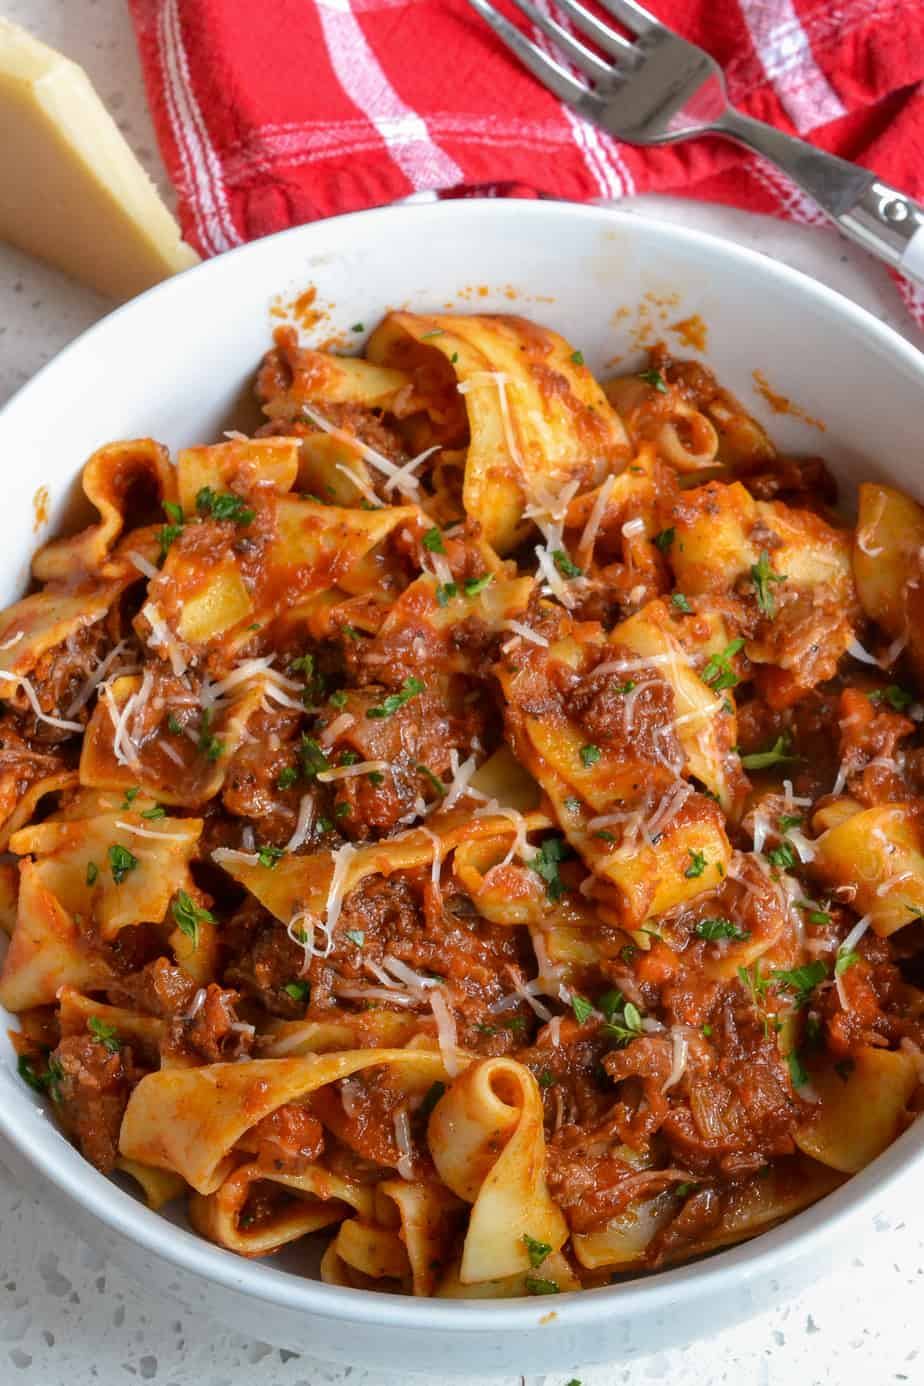 A bowl full of Beef Ragu with Pappardelle Pasta.